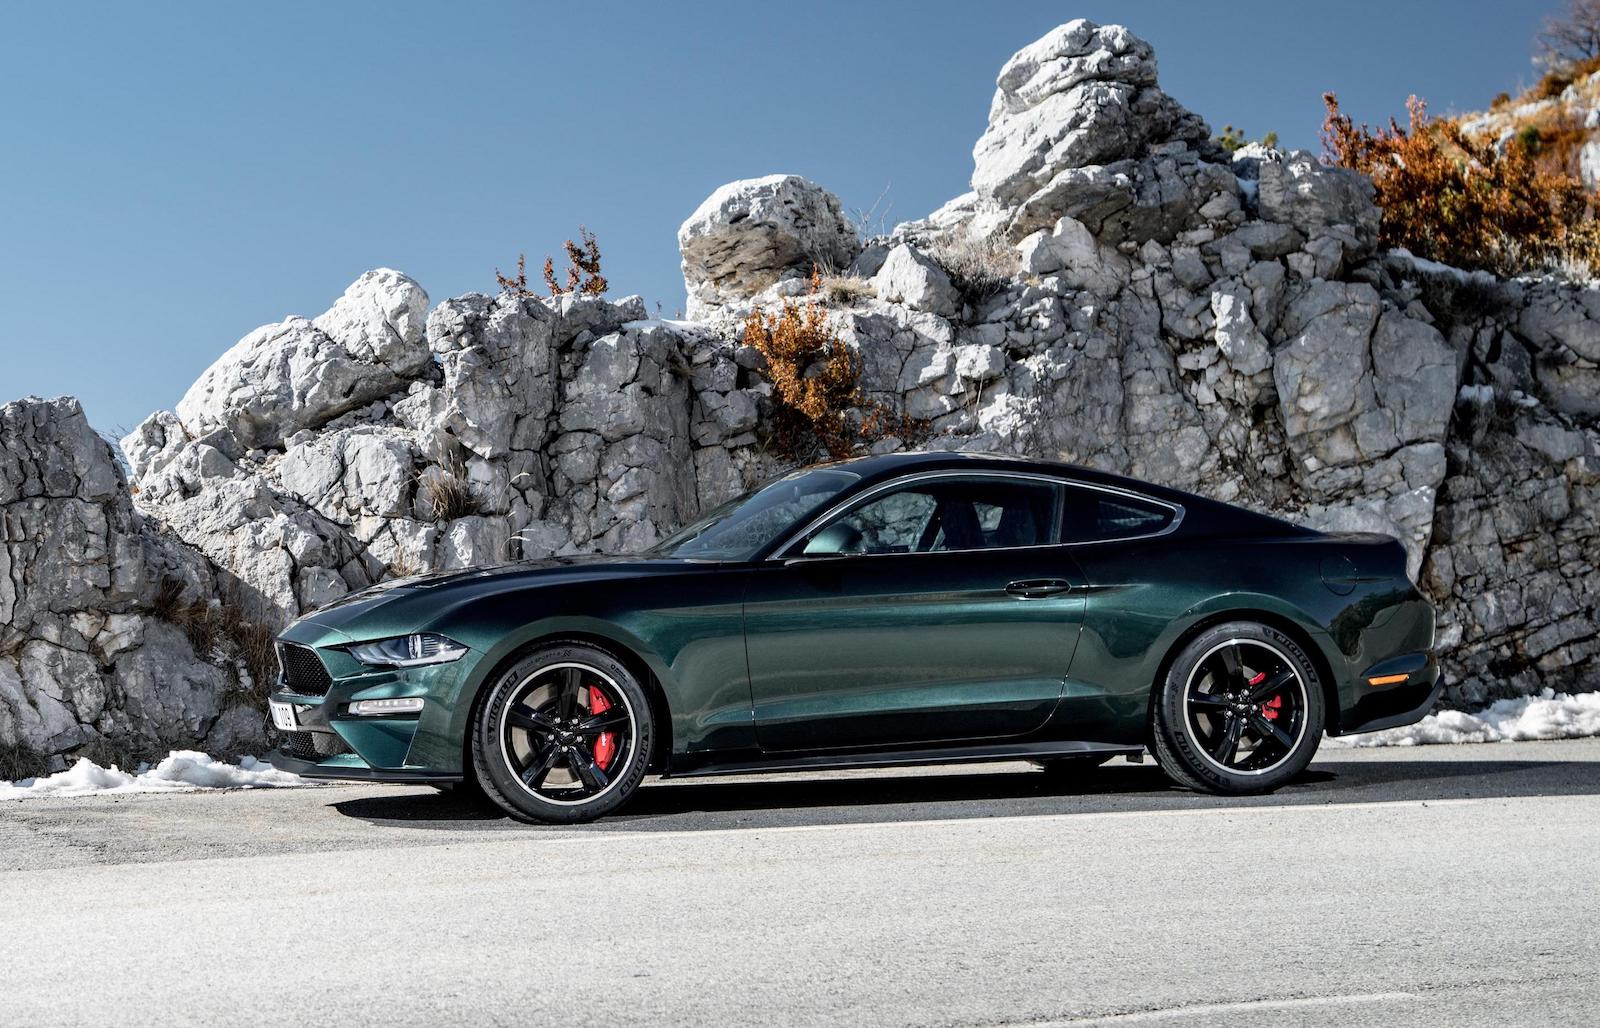 2018 ford mustang bullitt special edition confirmed for. Black Bedroom Furniture Sets. Home Design Ideas